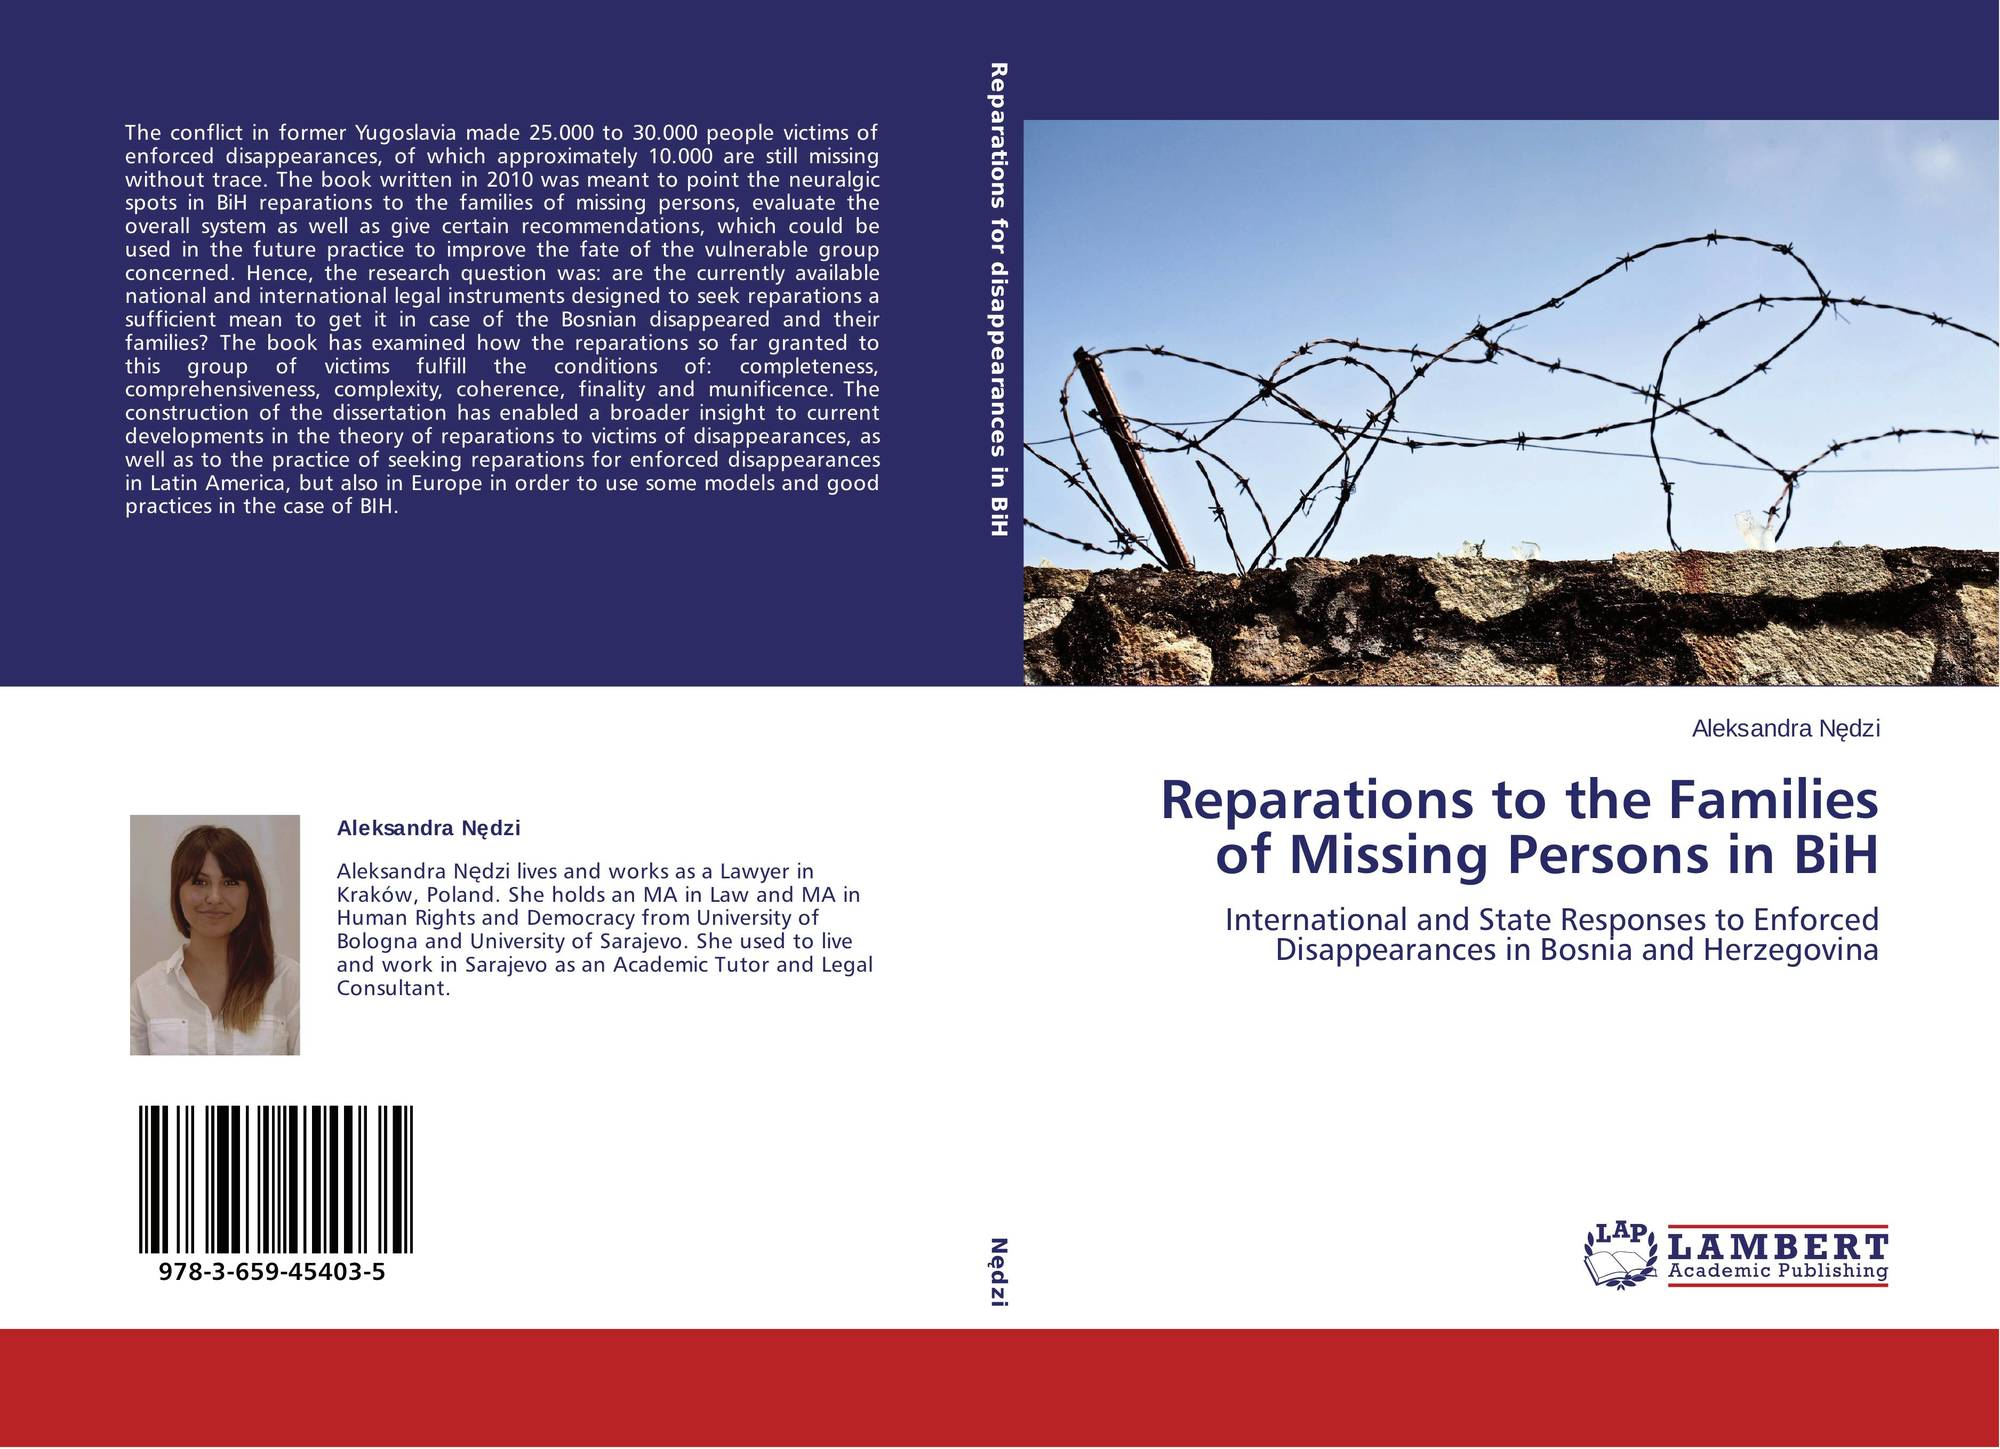 Reparations to the Families of Missing Persons in BiH, 978-3